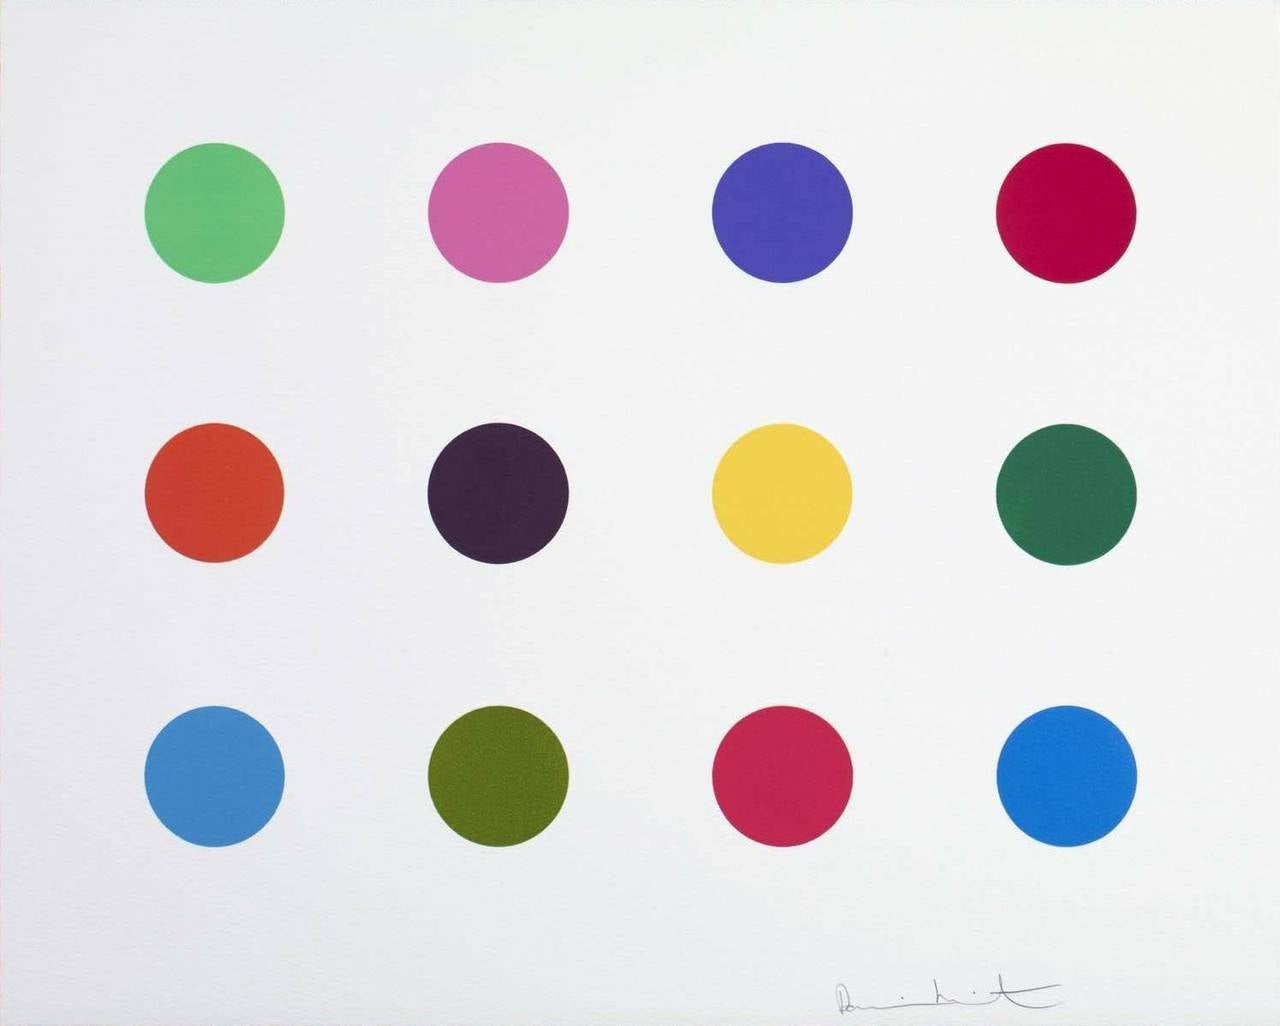 """damien hirst at the mfa boston essay Will damien hirst one day  """"a selection of works by damien hirst from various collections,"""" museum of fine arts, boston  hirst's work is."""